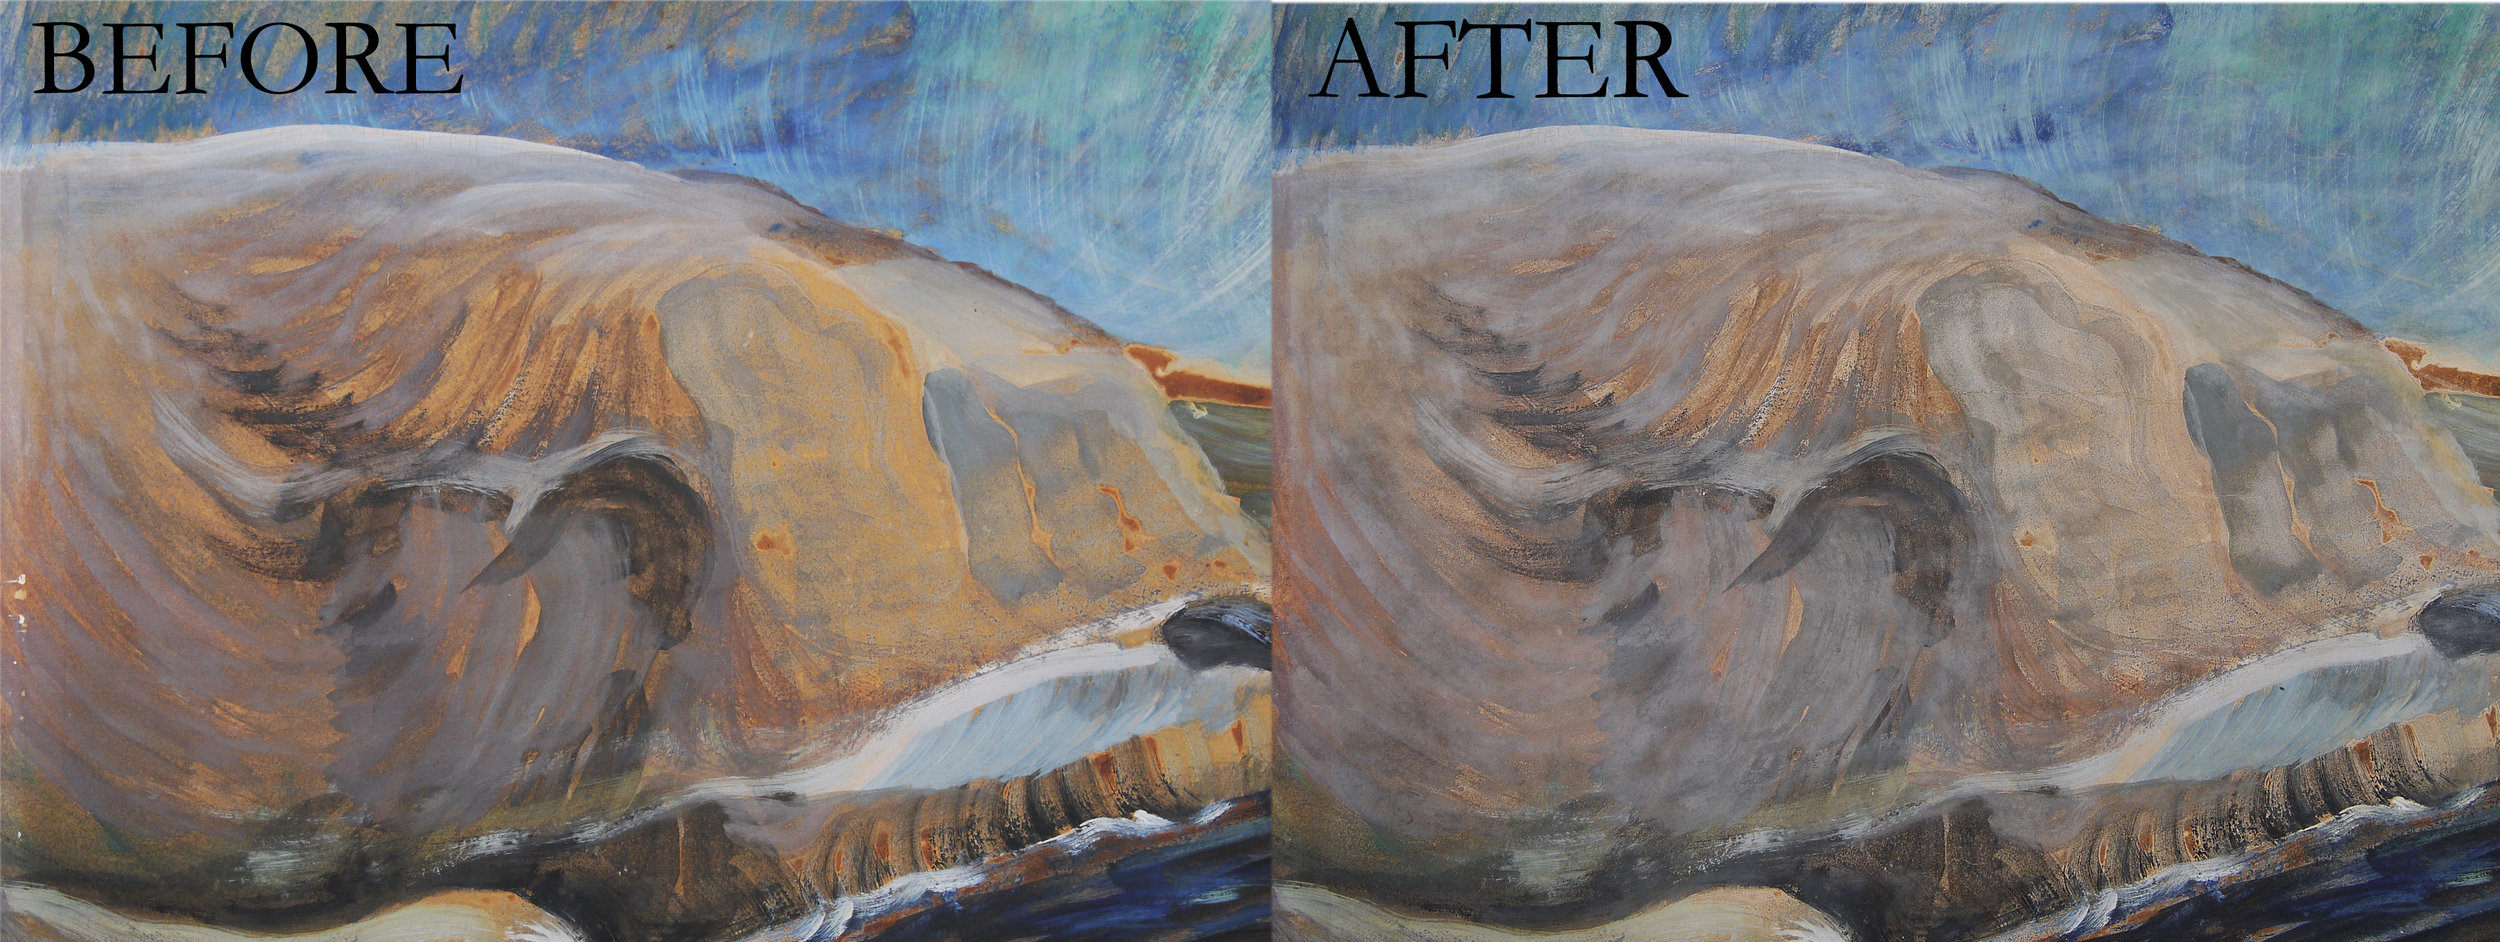 Sea and Skyscape  by Emily Carr - detail, before and after cleaning.